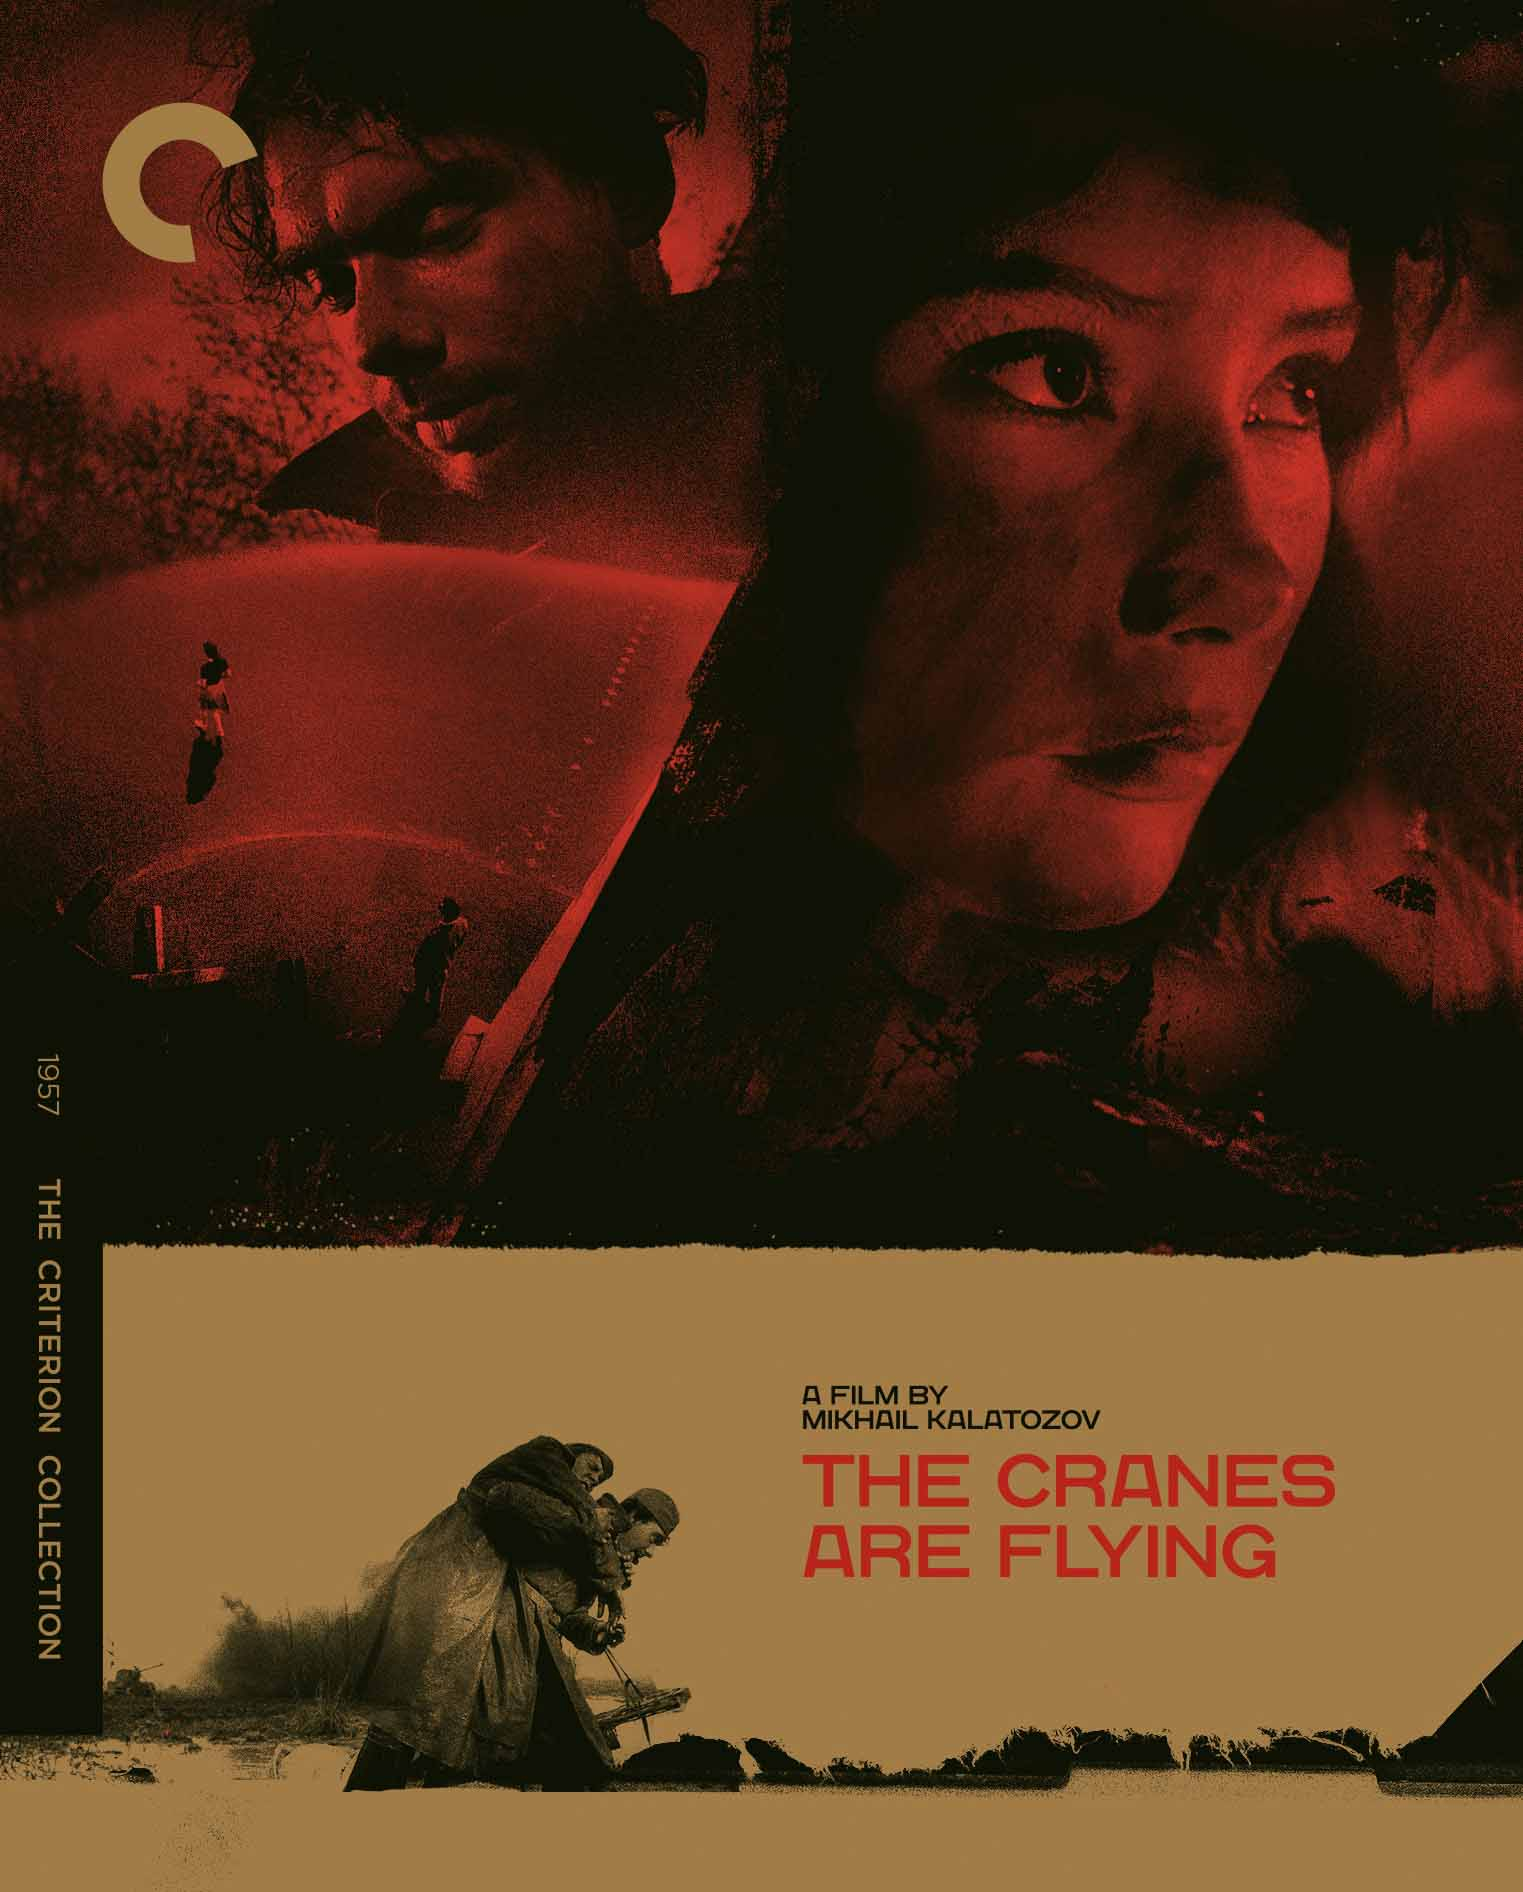 Buy PRE-ORDER The Cranes Are Flying (Blu-ray)